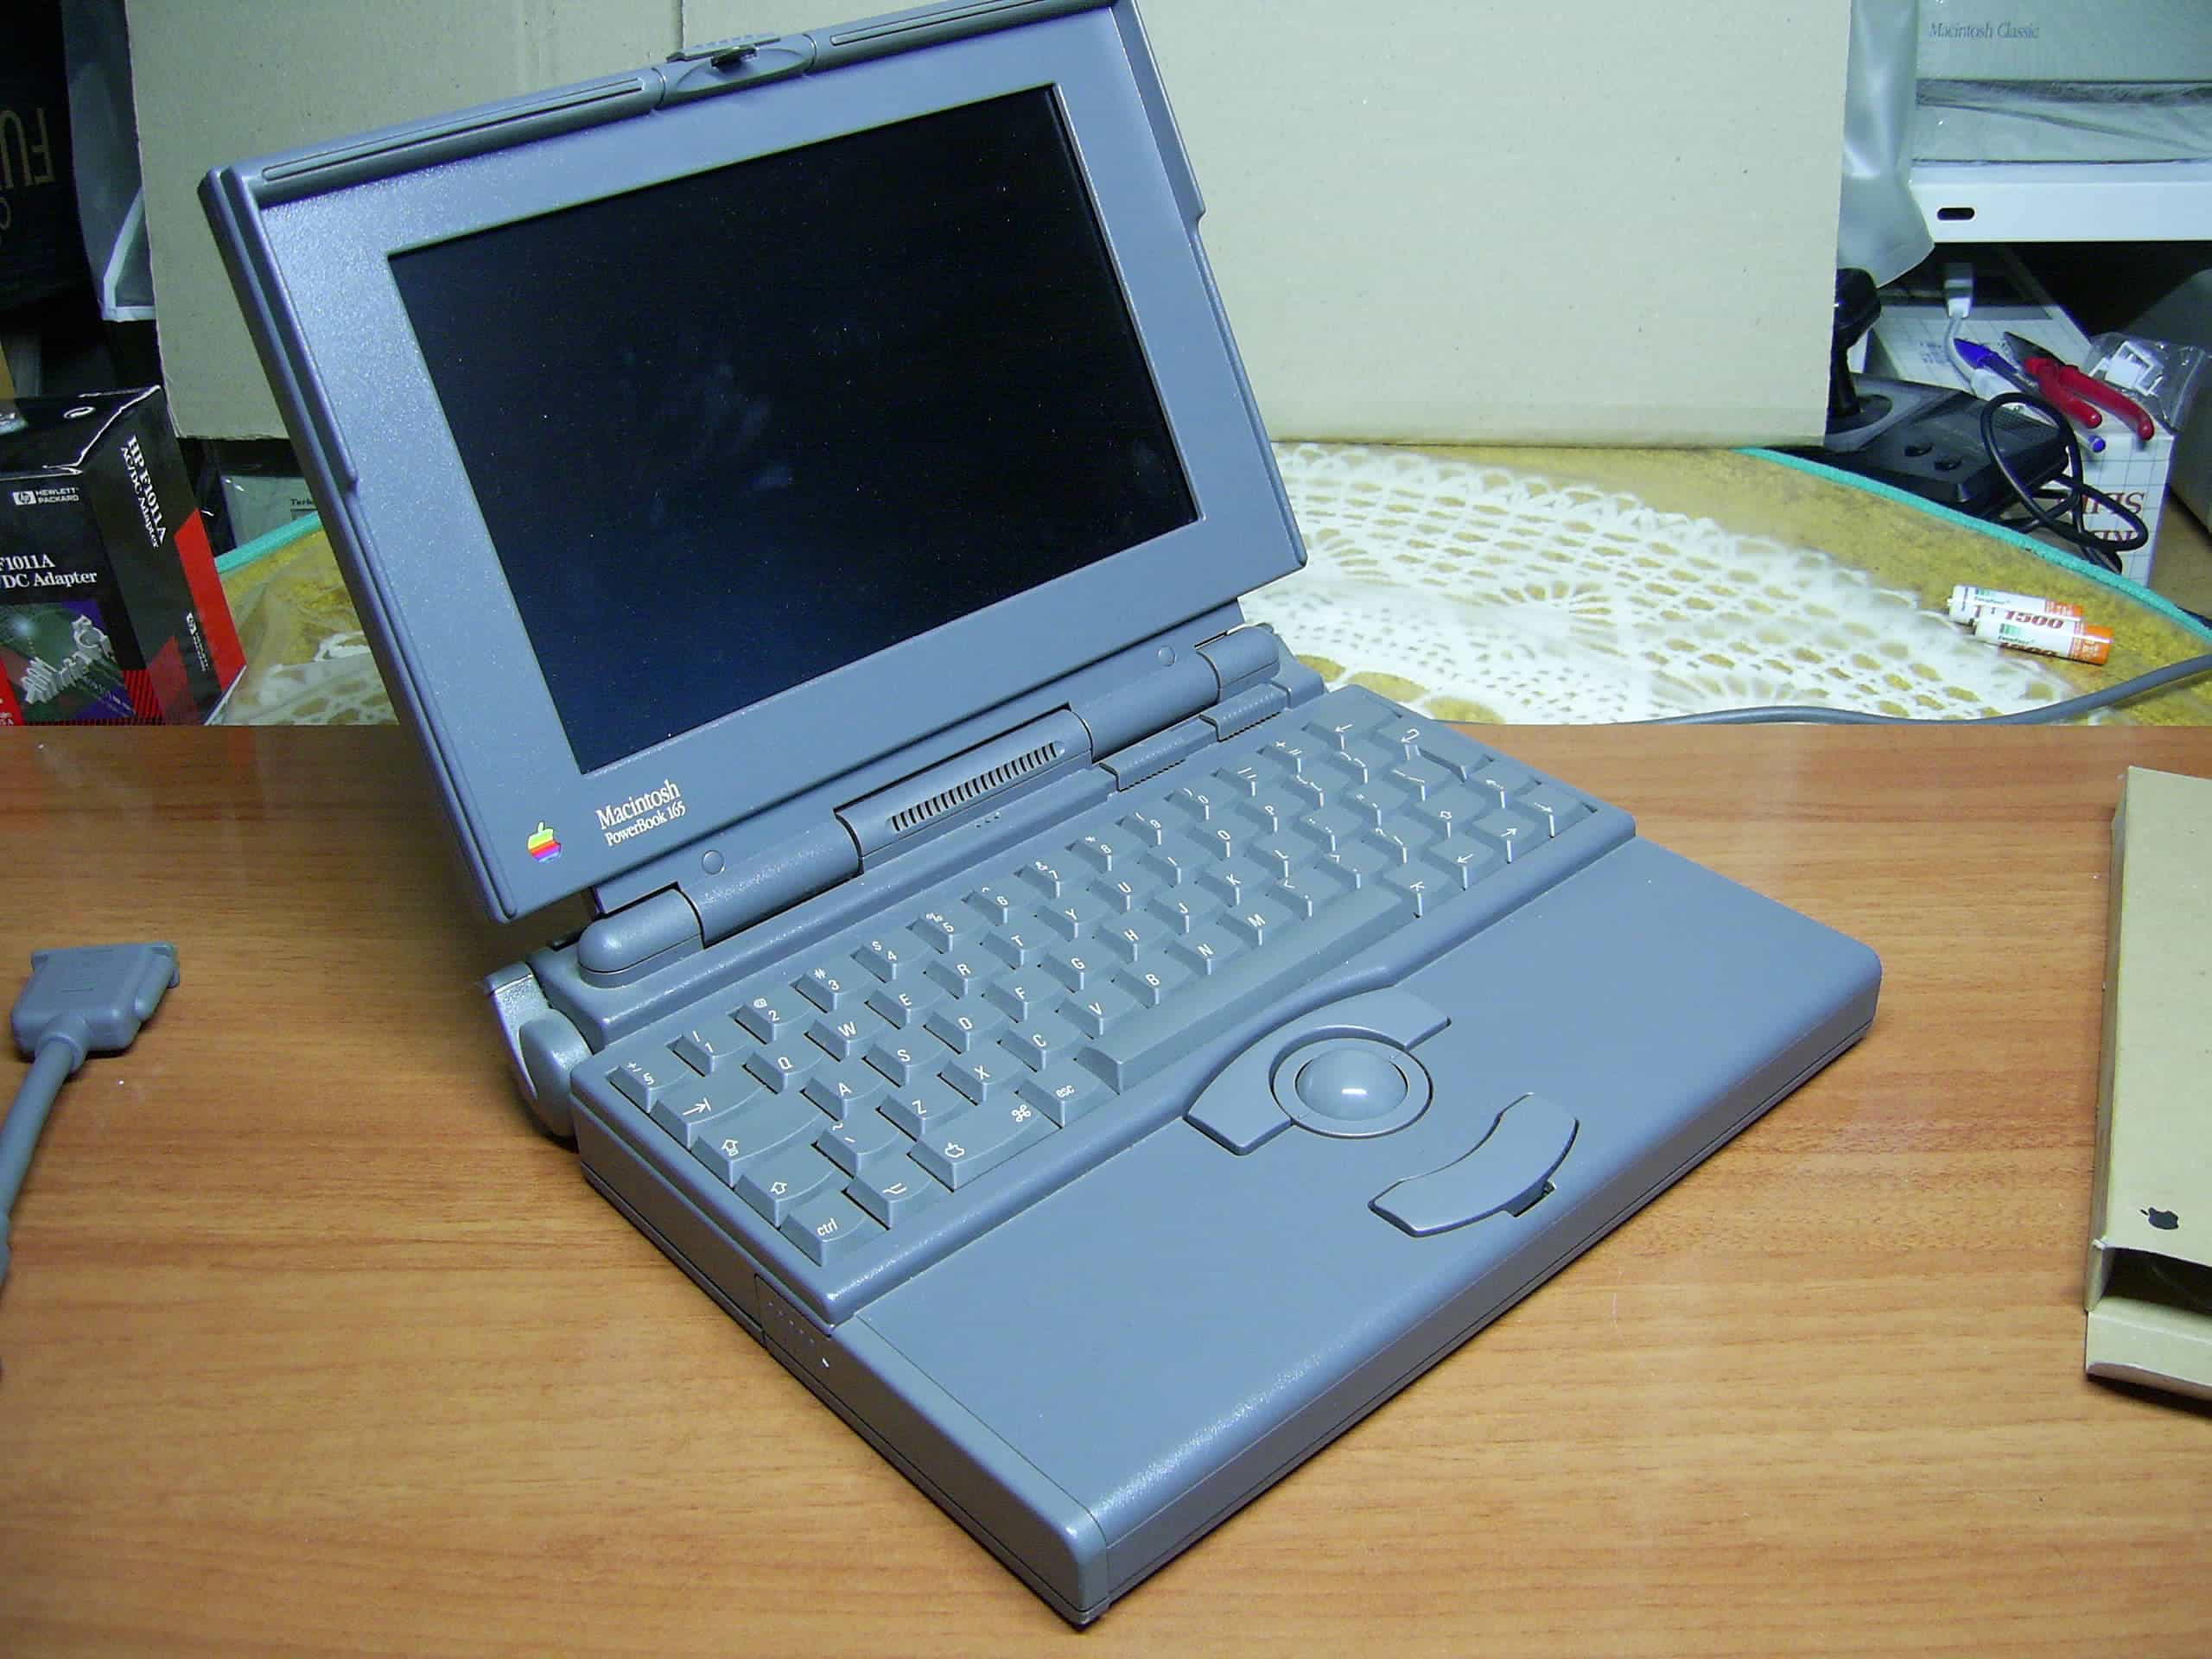 PowerBook 165 was Apple's most affordable laptop.